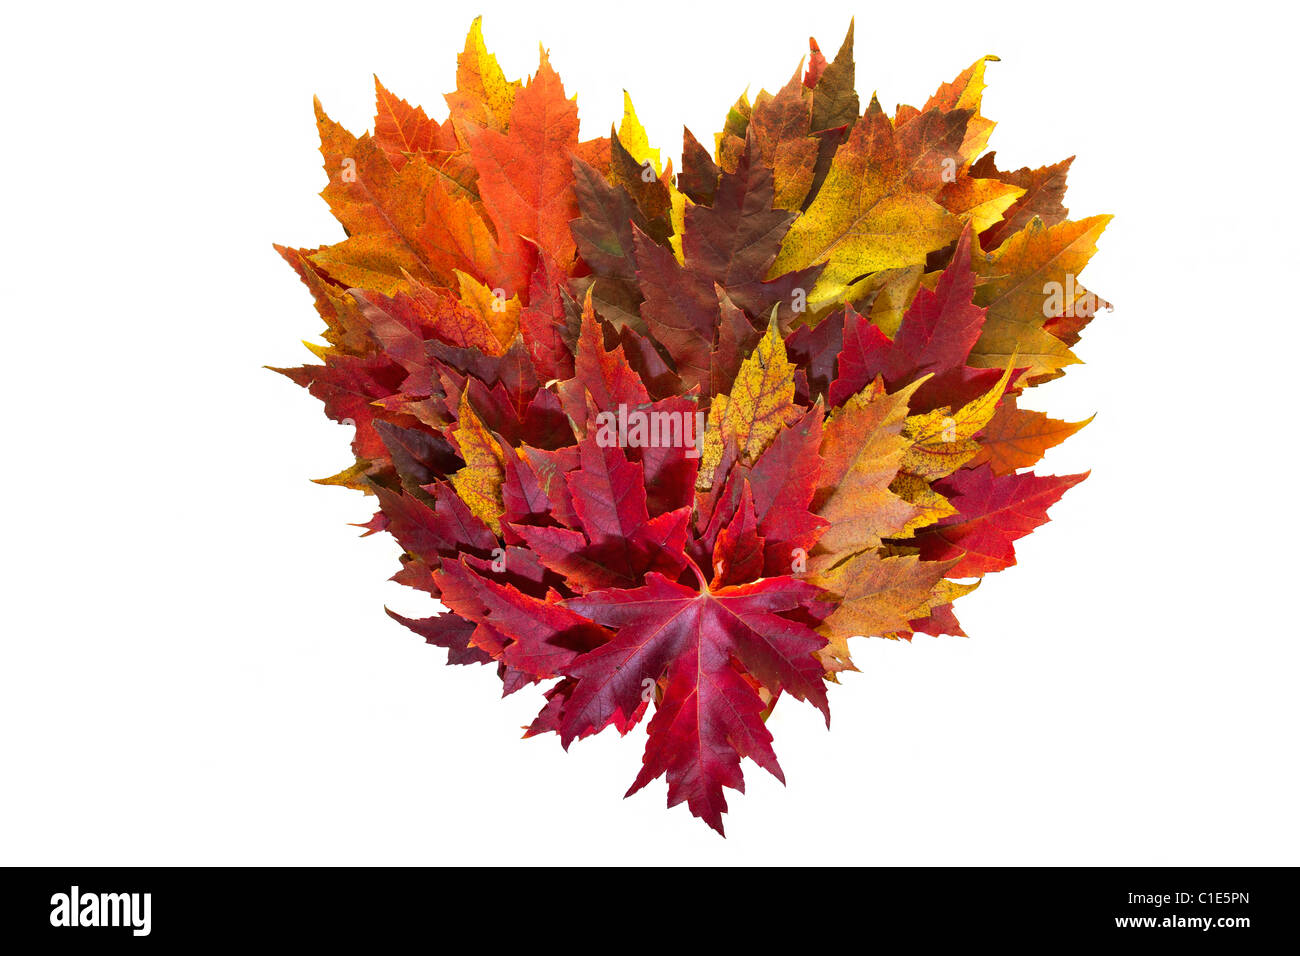 Maple Leaves Mixed Fall Colors Autumn Heart Wreath on White Background - Stock Image